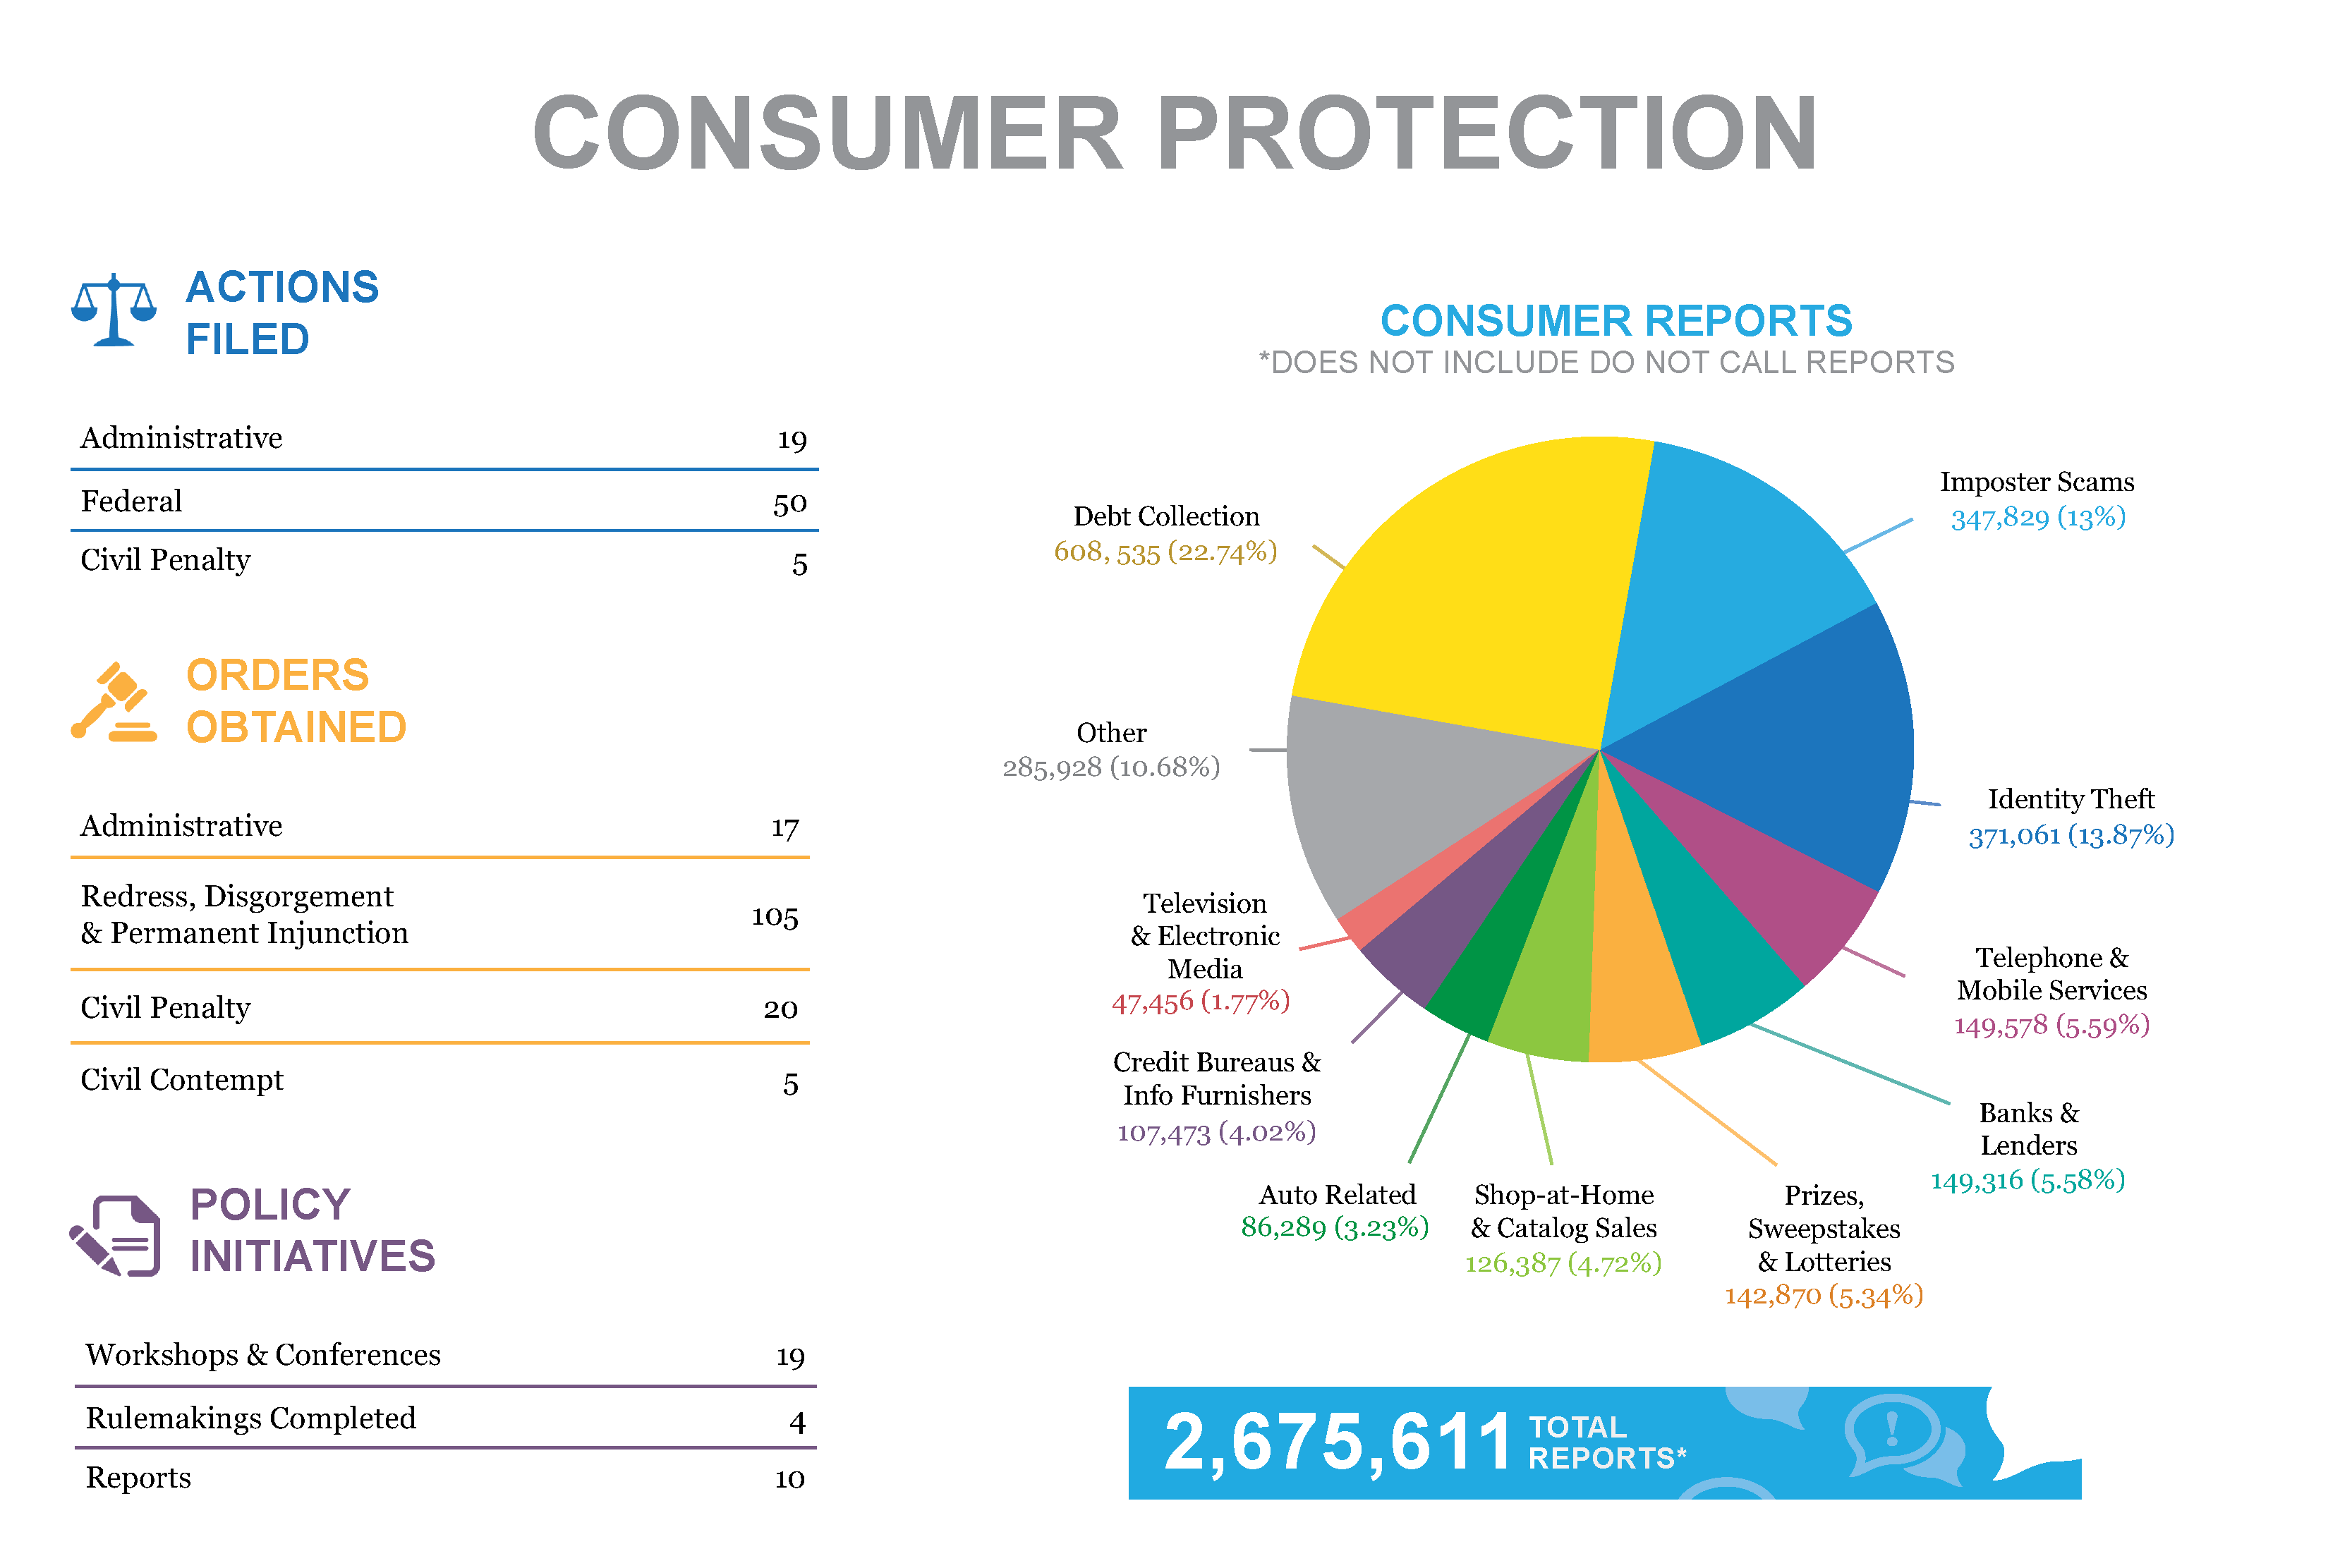 Stats & Data 2017 Consumer Protection infographic